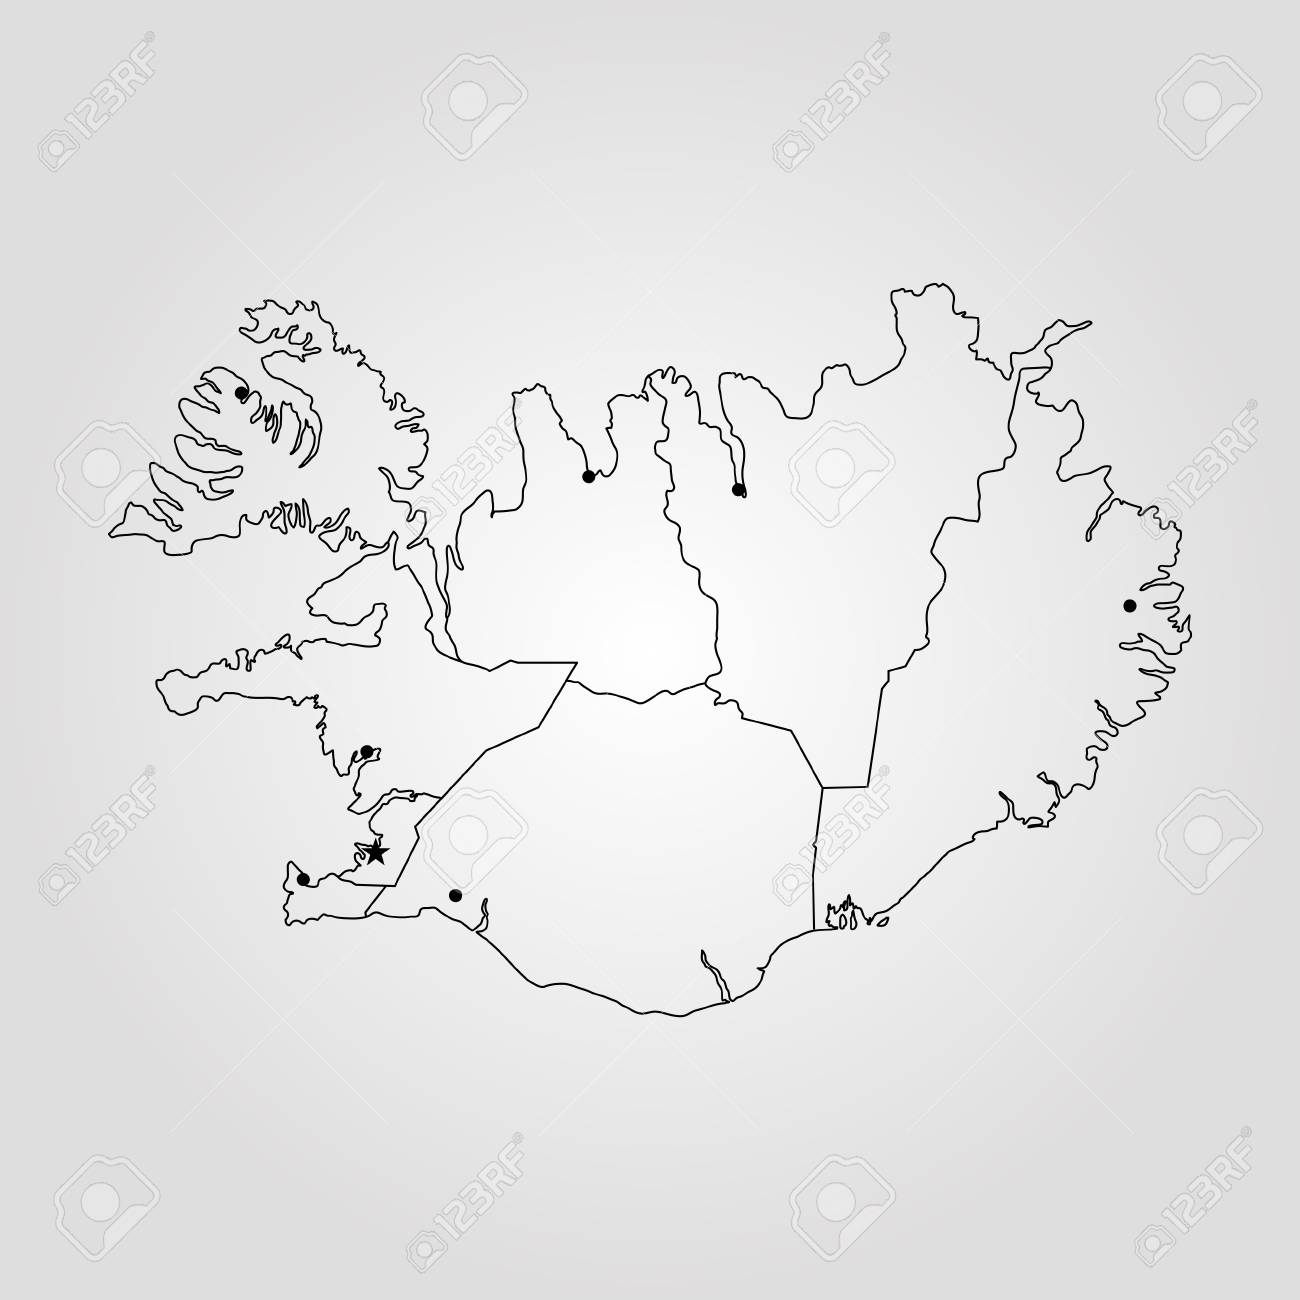 Map of Iceland. Vector illustration. World map Iceland On A World Map on england on europe map, south pacific islands world map, iceland on a map of europe, show iceland on world map, iceland map world atlas, island on world map, ascension island map, monster island map, java on world map, reykjavik iceland on world map, latvia on world map, kenya on world map, namibia on world map, easter island map, iceland location on globe, iceland on a canada map, digimon world 1 map,